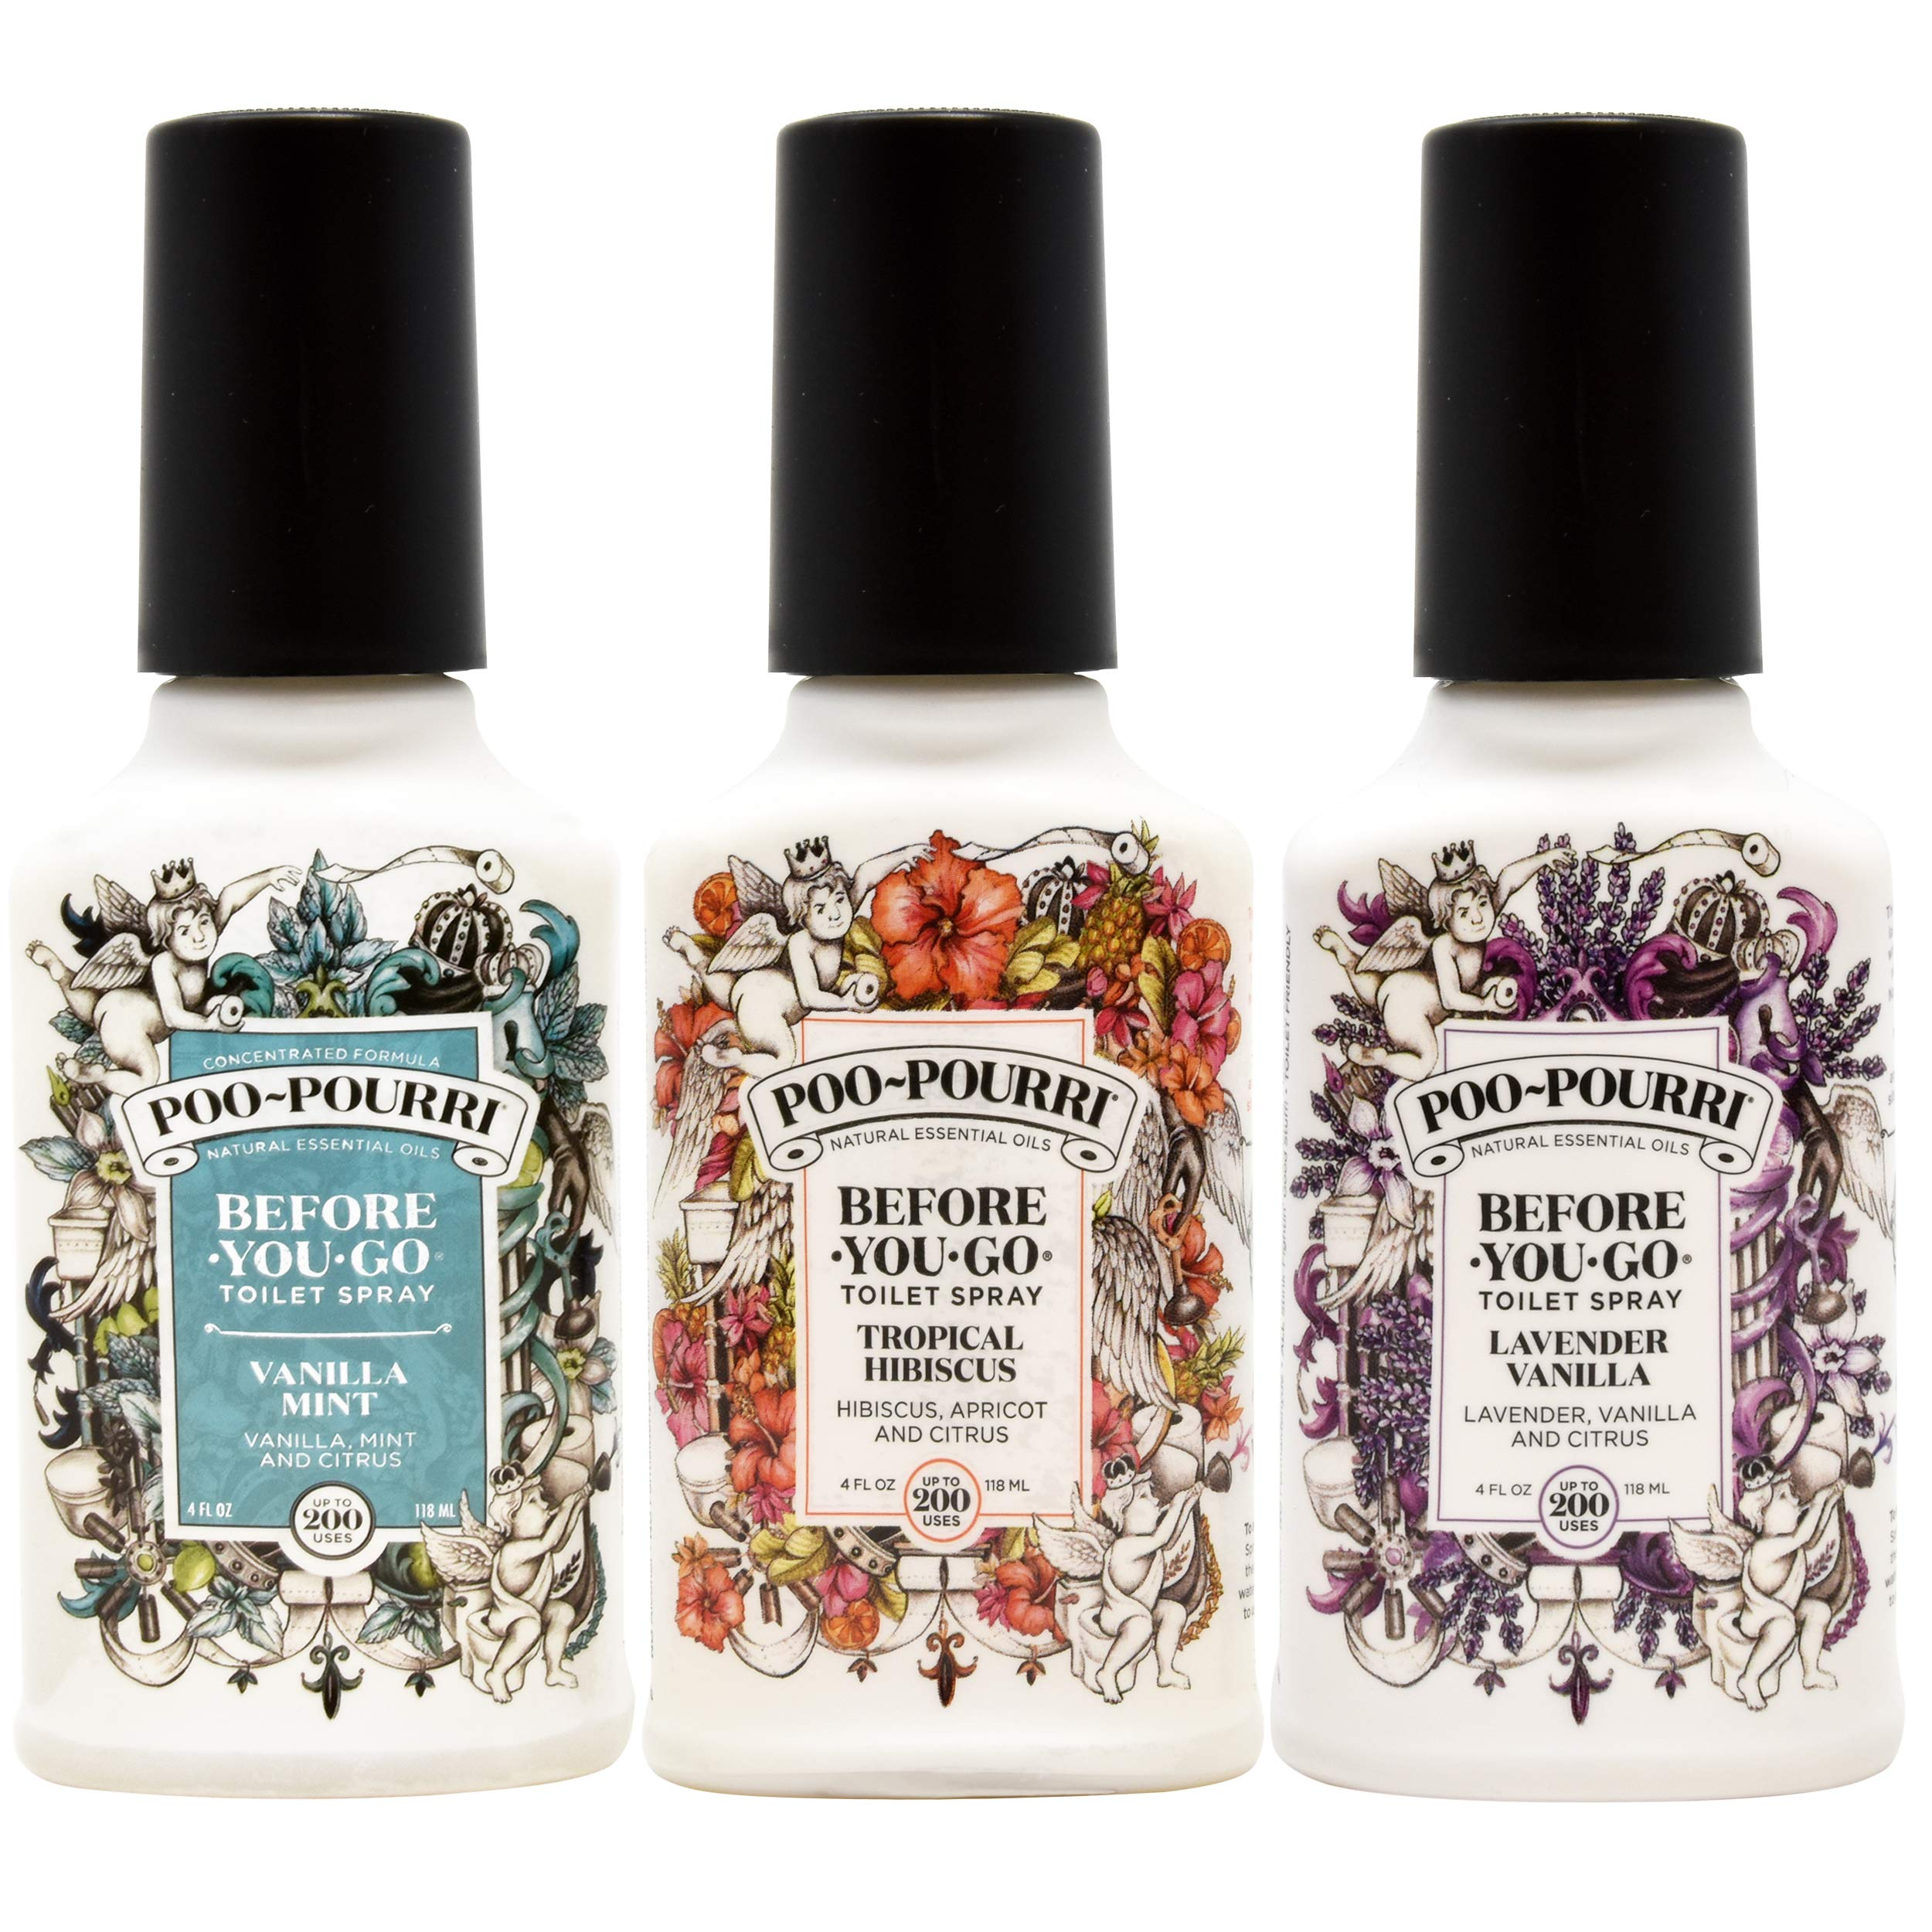 Poo-Pourri Lavender Vanilla, Tropical Hibiscus and Vanilla Mint 4-Ounce Set by Poo-Pourri (Image #1)